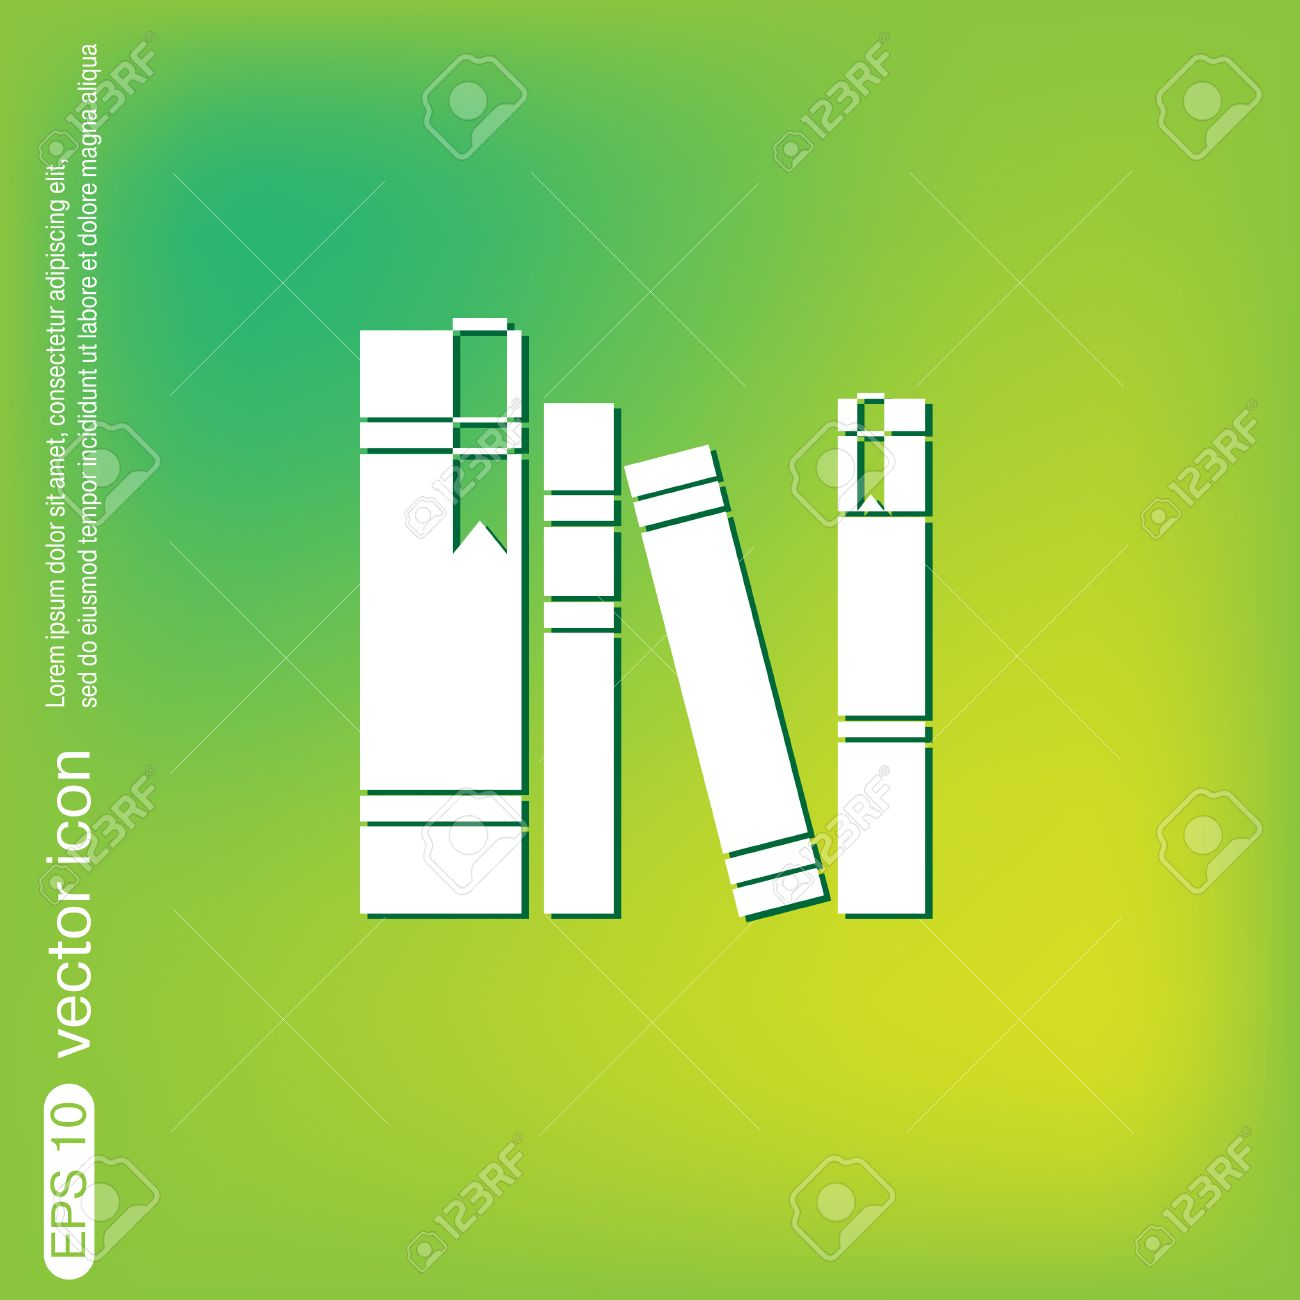 symbol for literature book spine spines of books icon symbol of a  book spine spines of books icon symbol of a science and vector book spine spines of